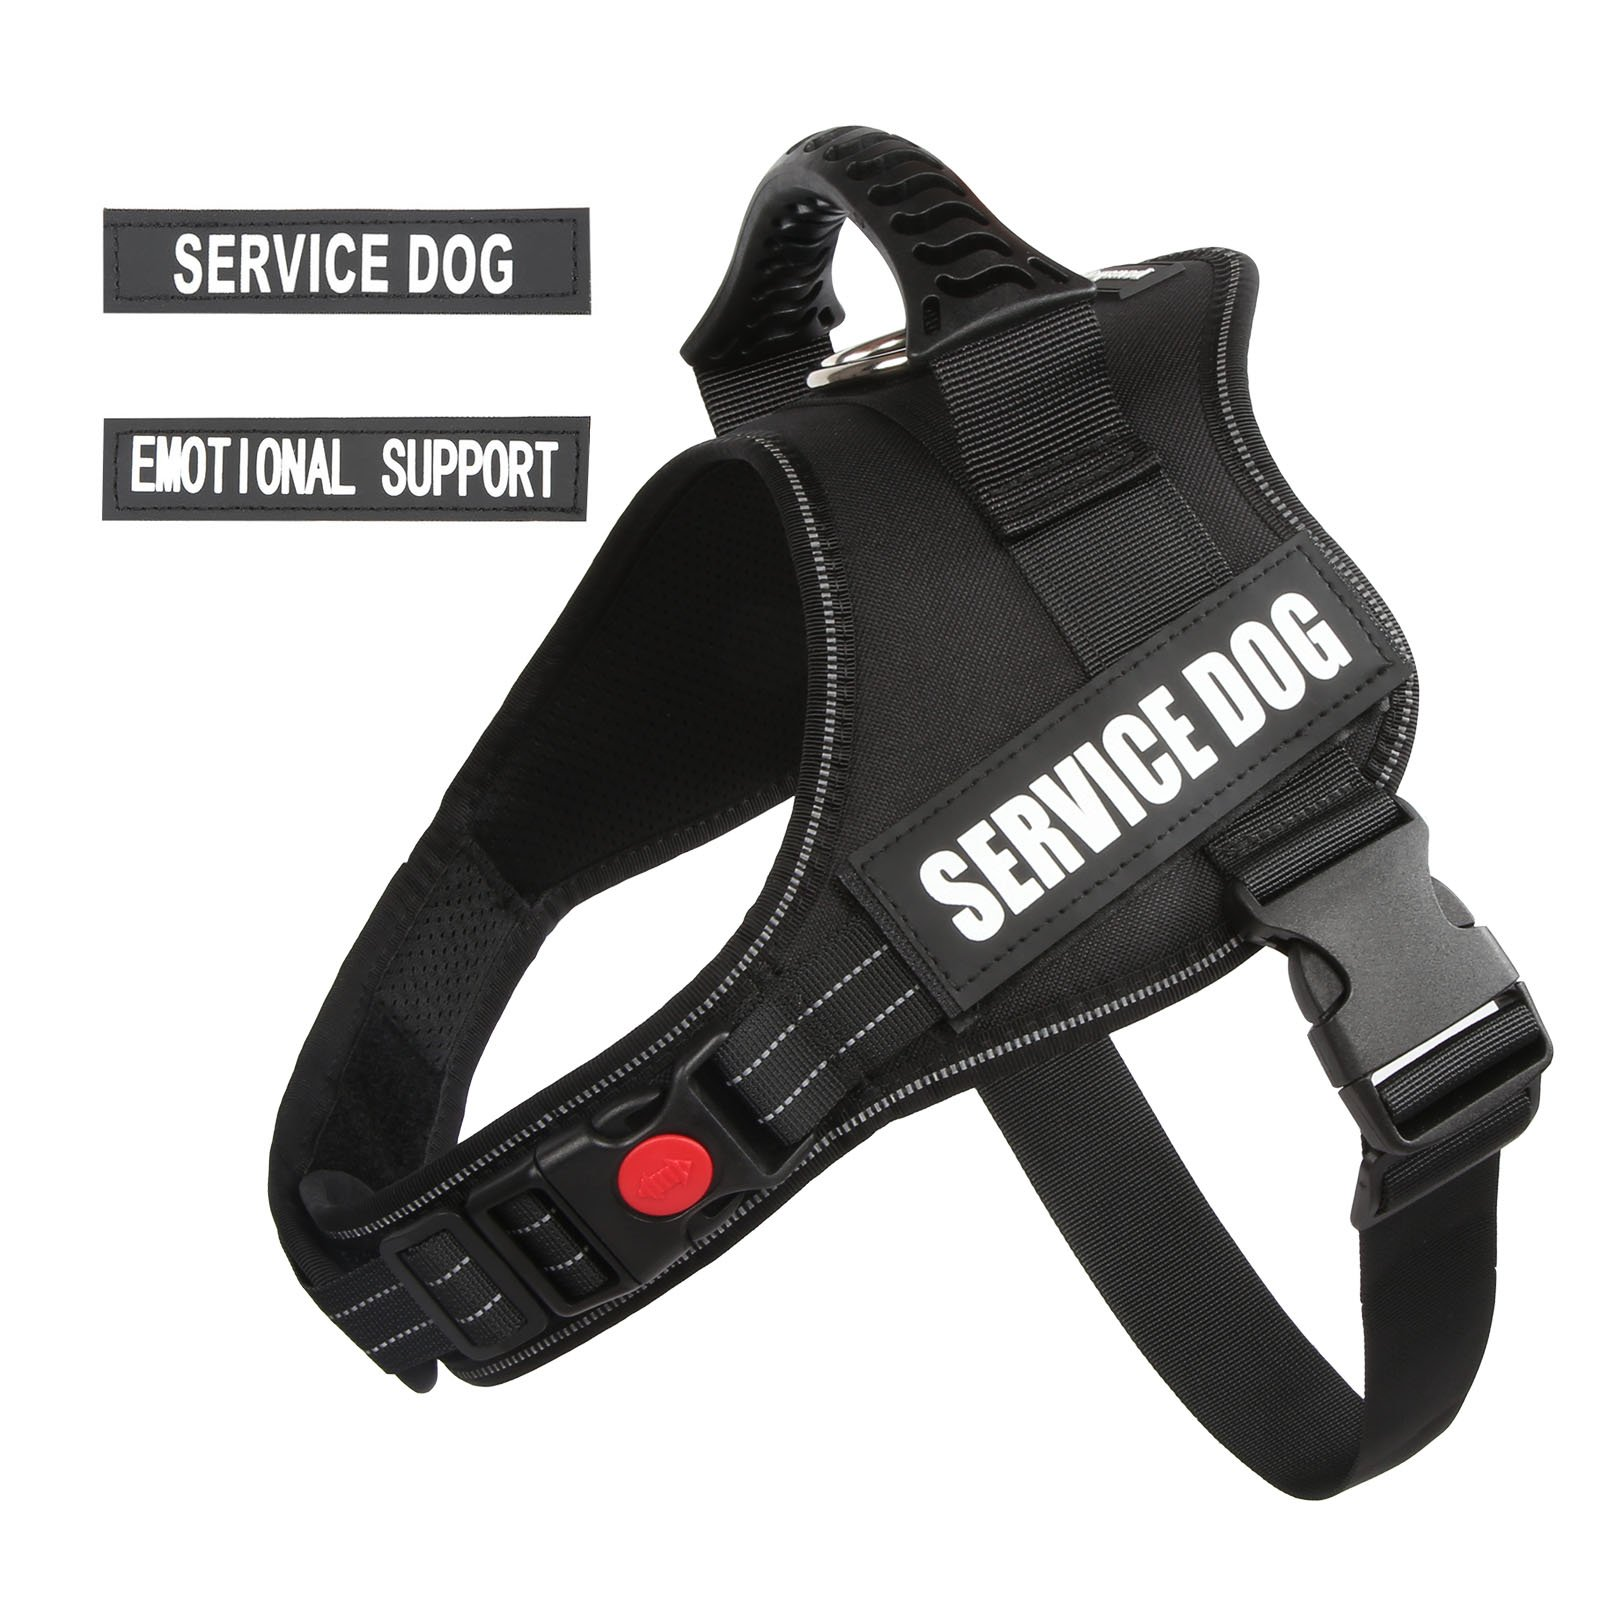 """PawShoppie Real Reflective Service Dog Vest Harness with 2 Free Removable Service Dog and 2 """"Emotional Support'' Patches, Woven Polyester & Nylon, Comfy Soft Padding(Black) (S(Girth:20-25''))"""